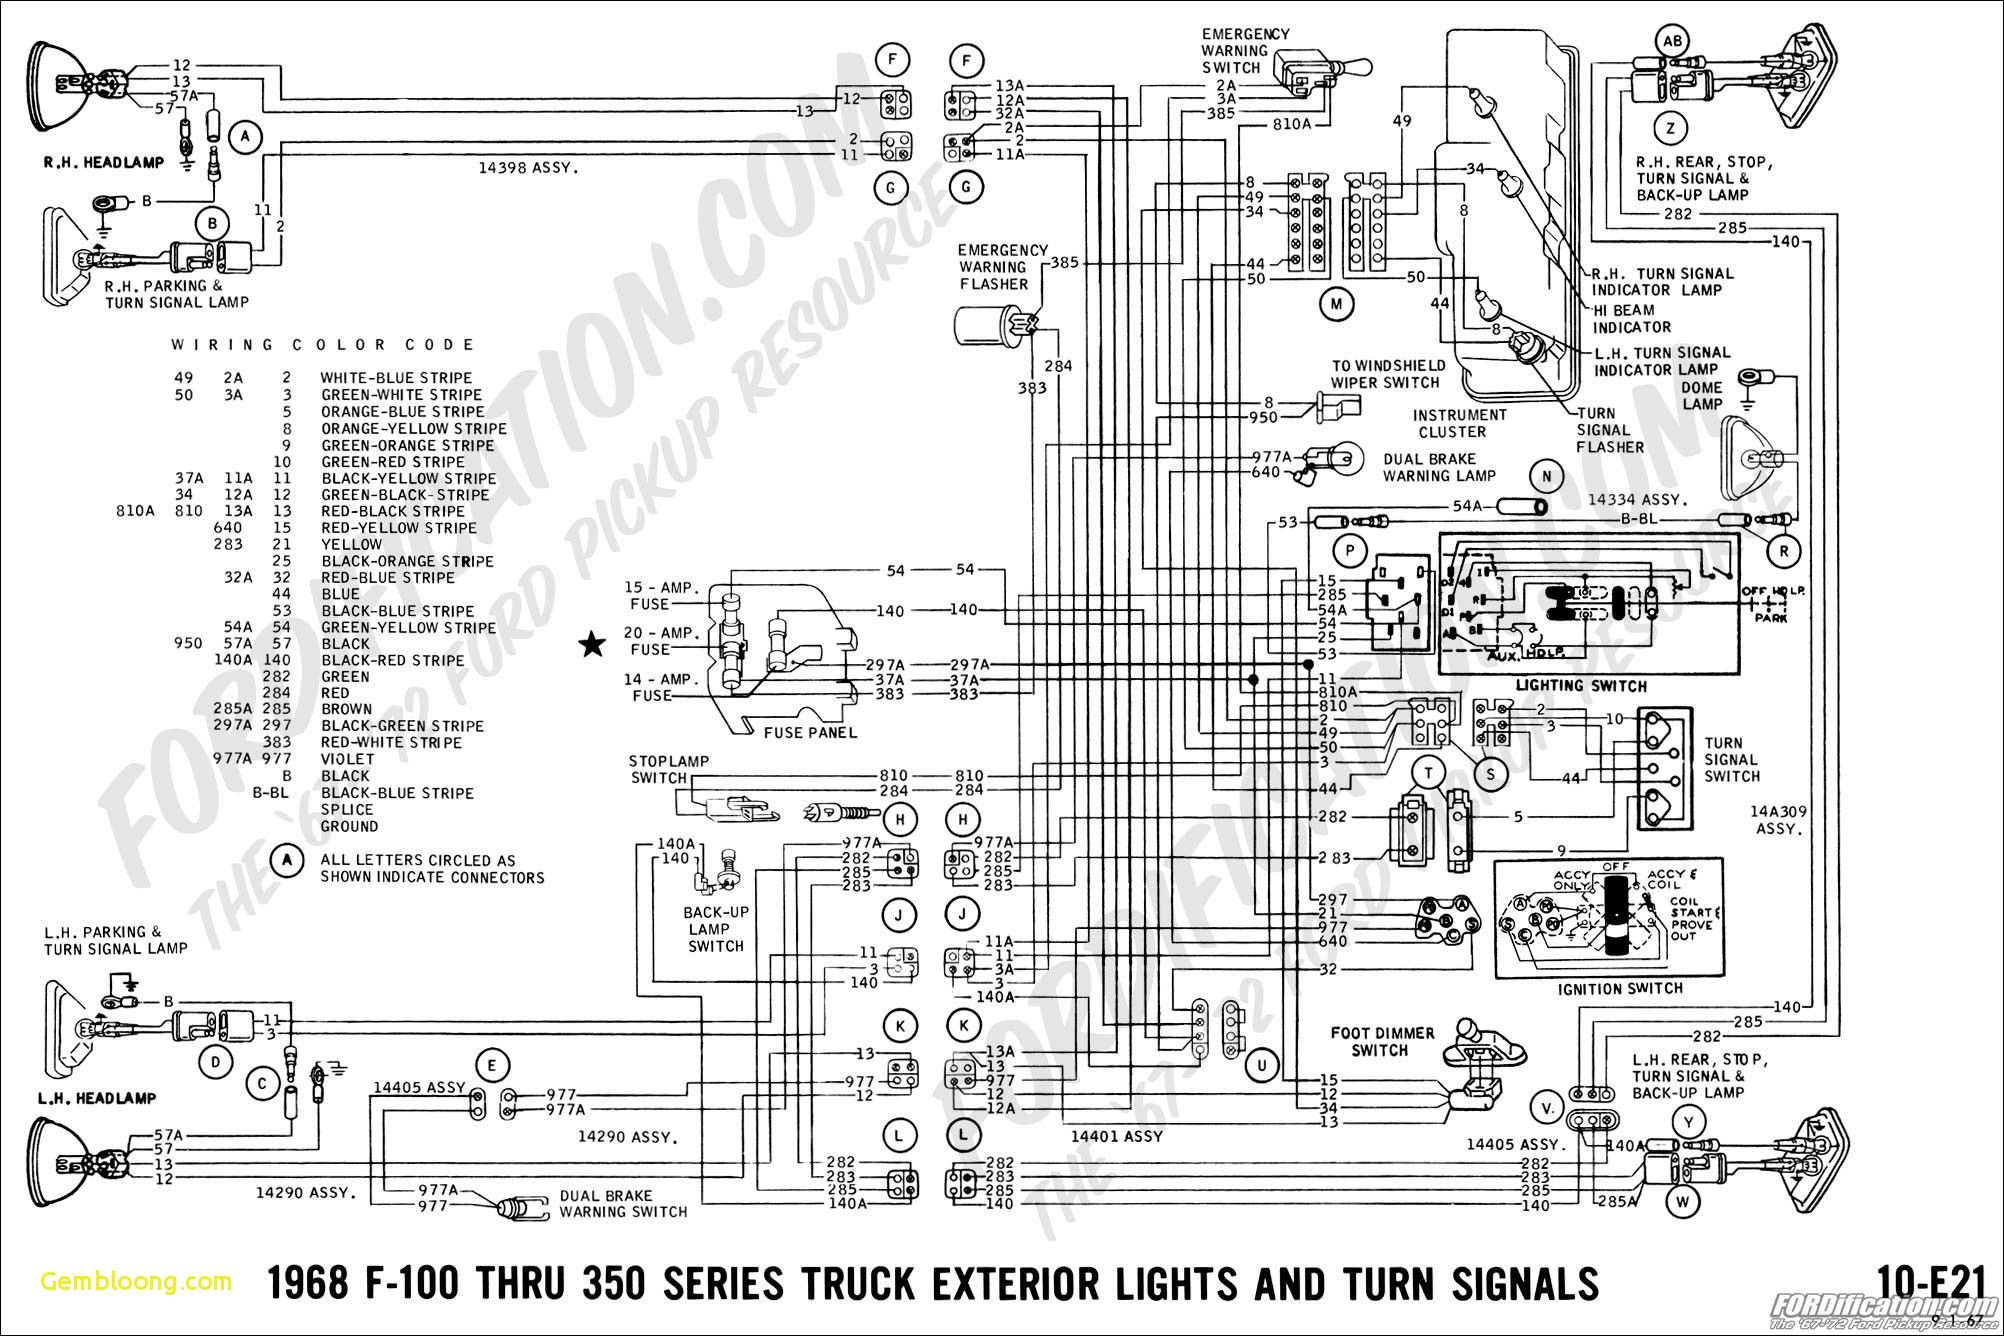 New Panasonic Inverter Wiring Diagram With Images